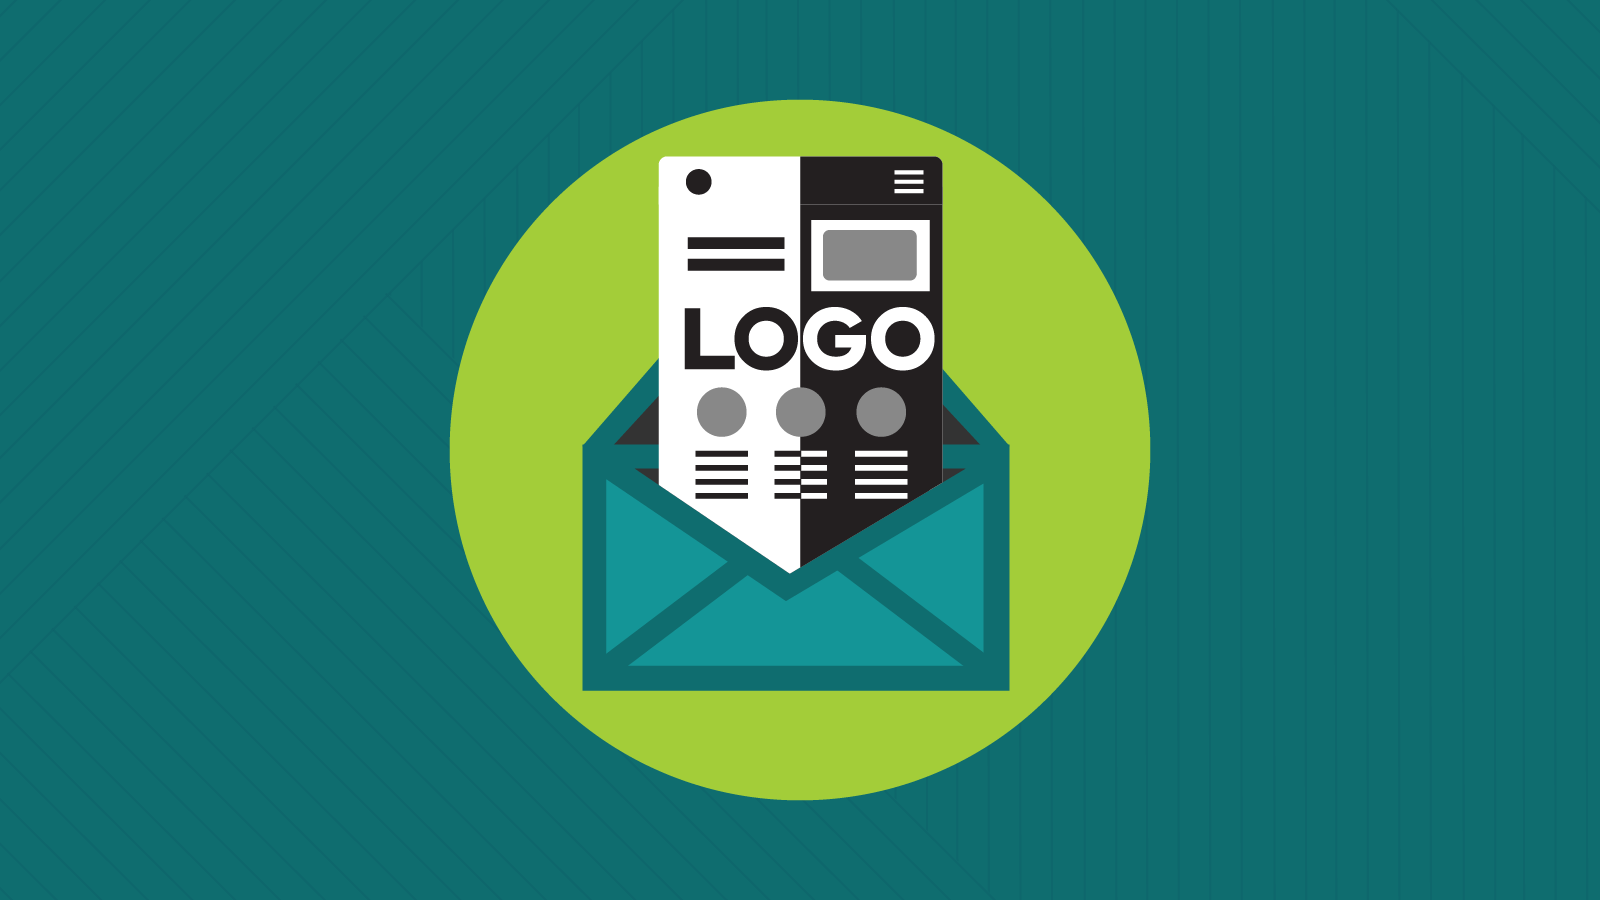 Email emerges from an envelope with logo split in light and dark modes.